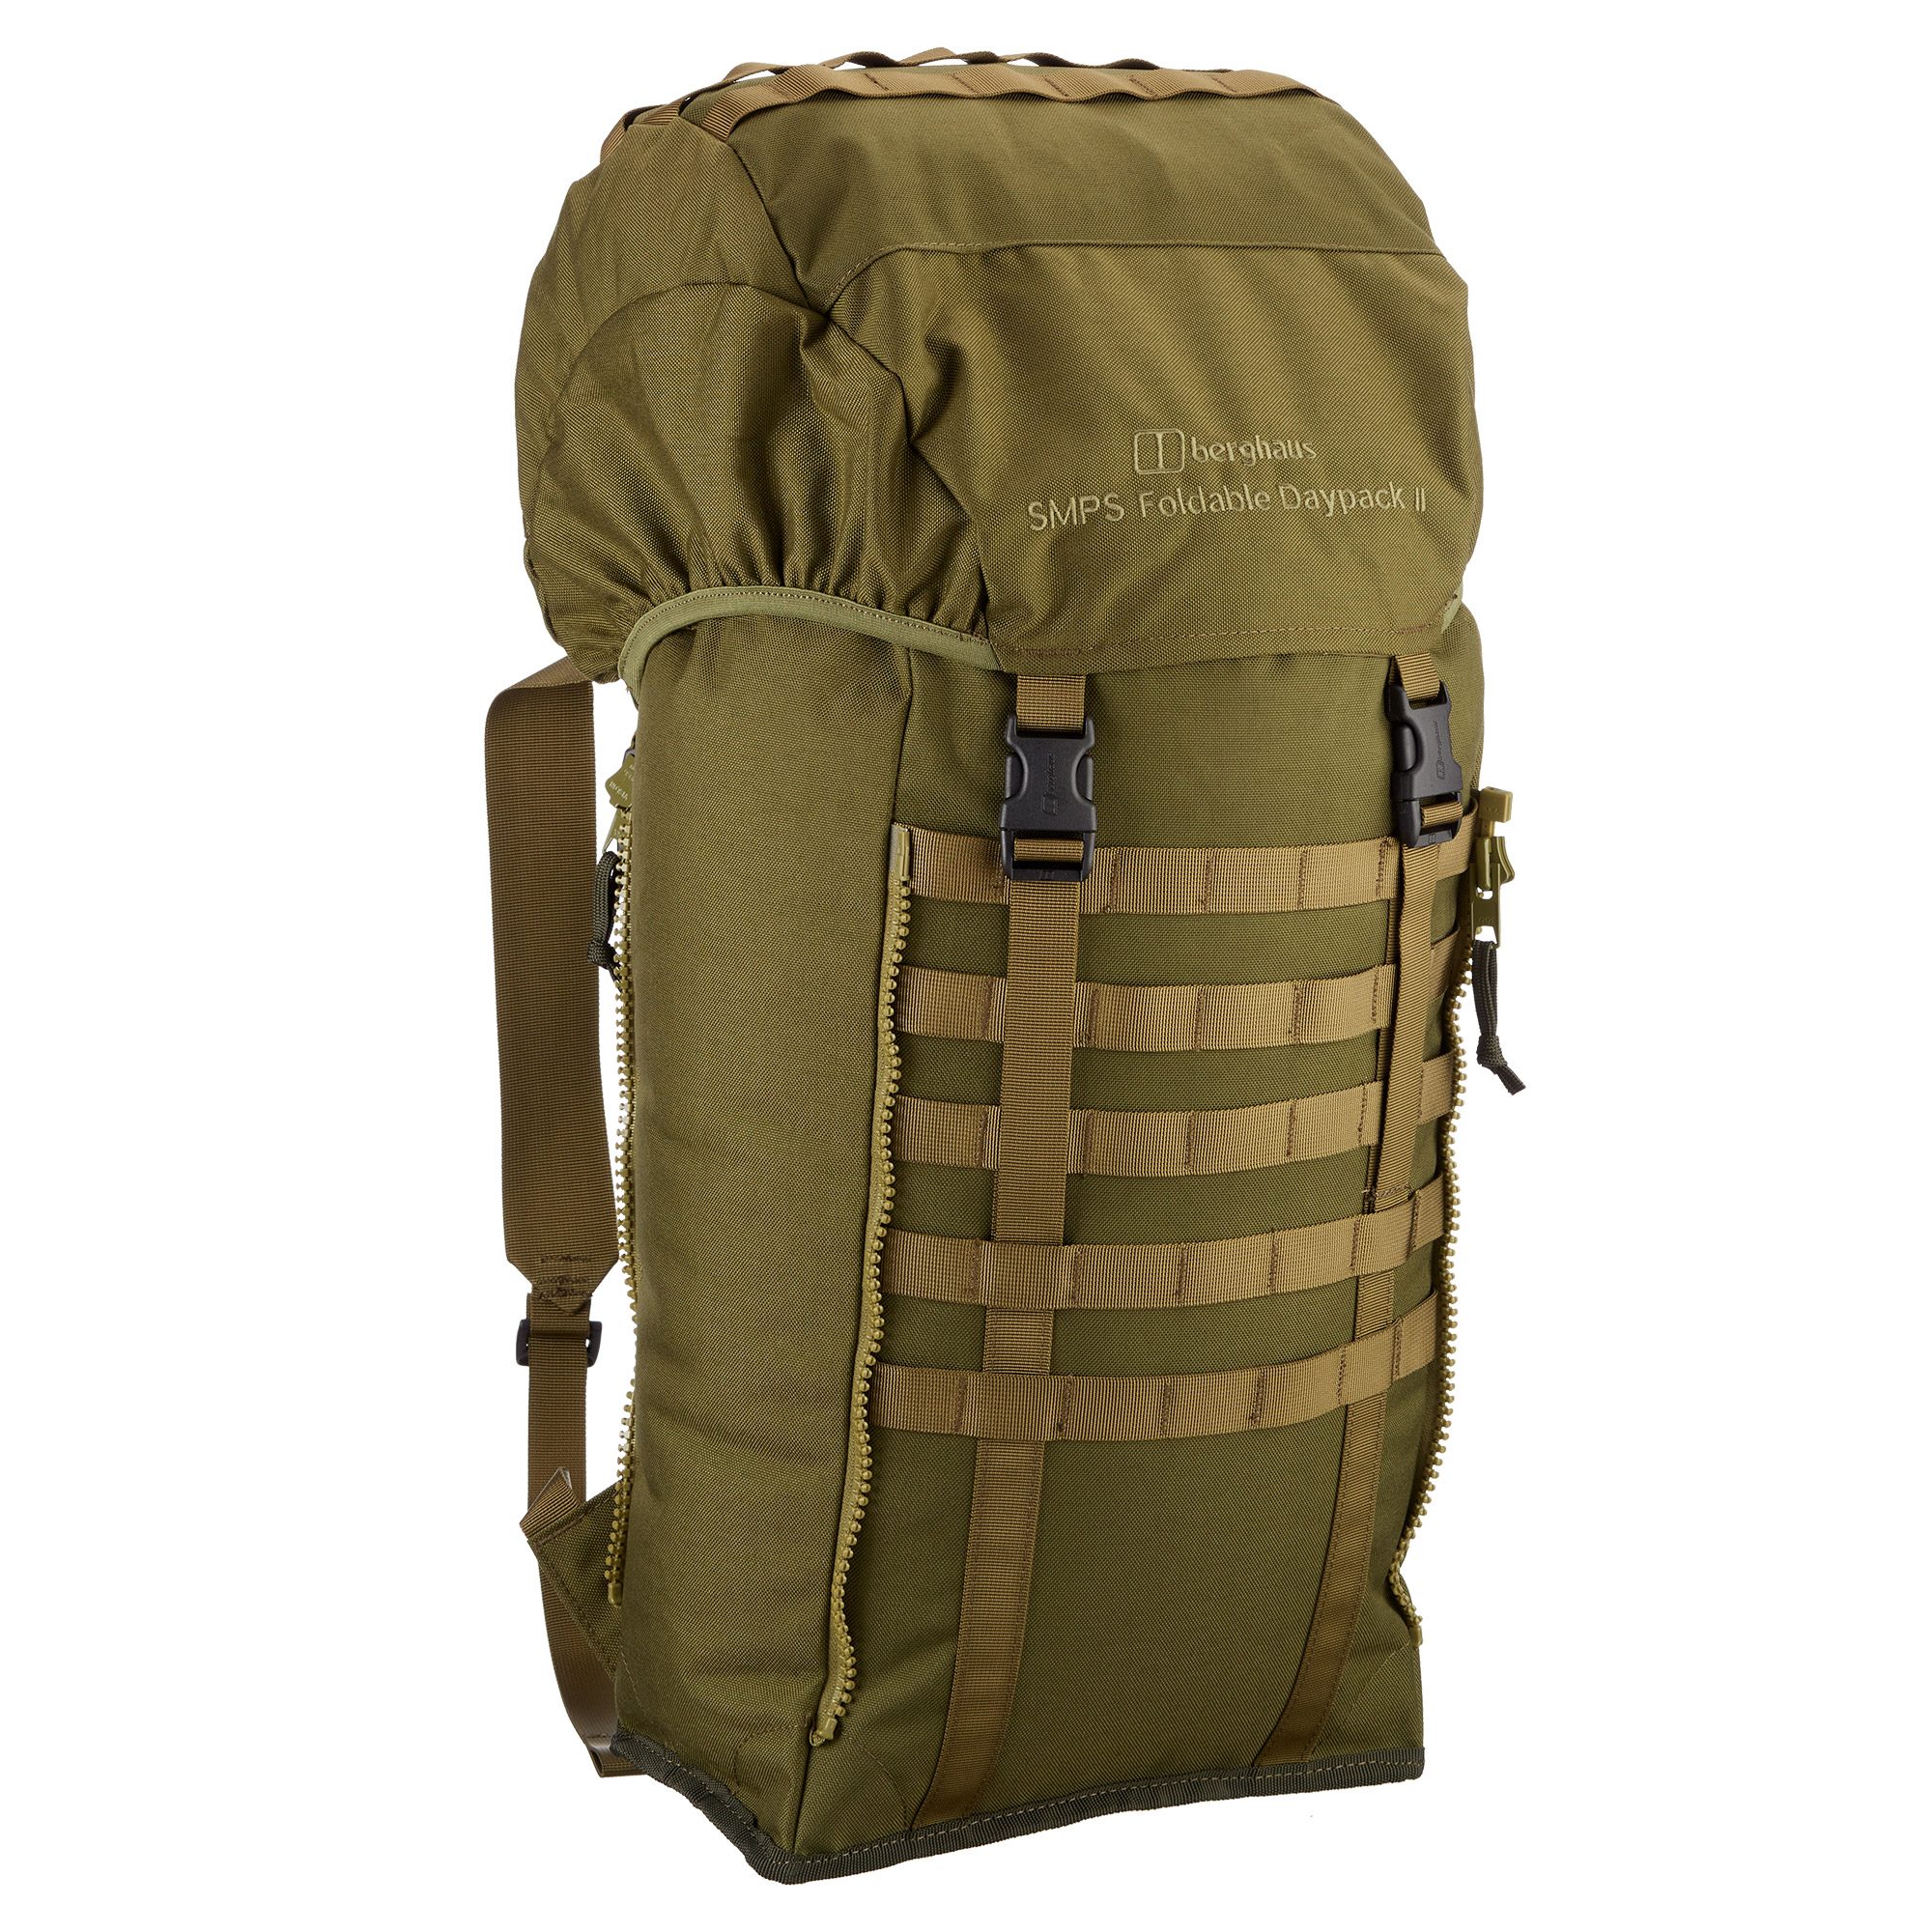 Berghaus SMPS Foldable Daypack II cedar